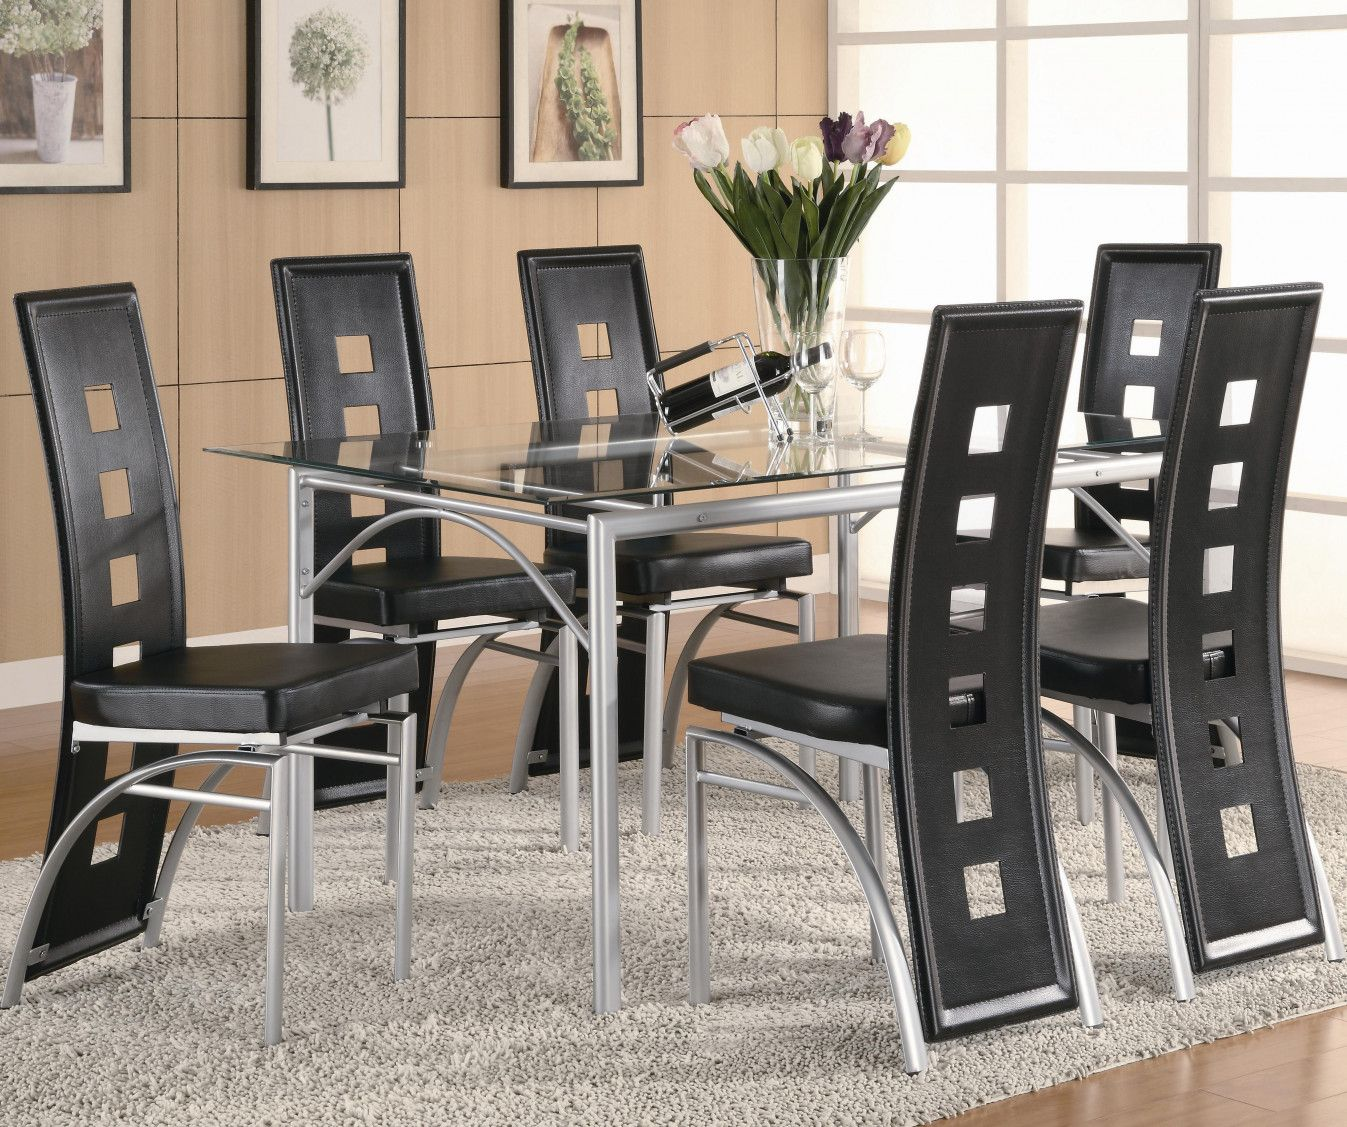 Dining Room Furniture Dallas 2018 Dining Chairs Dallas  Modern Style Furniture Check More At